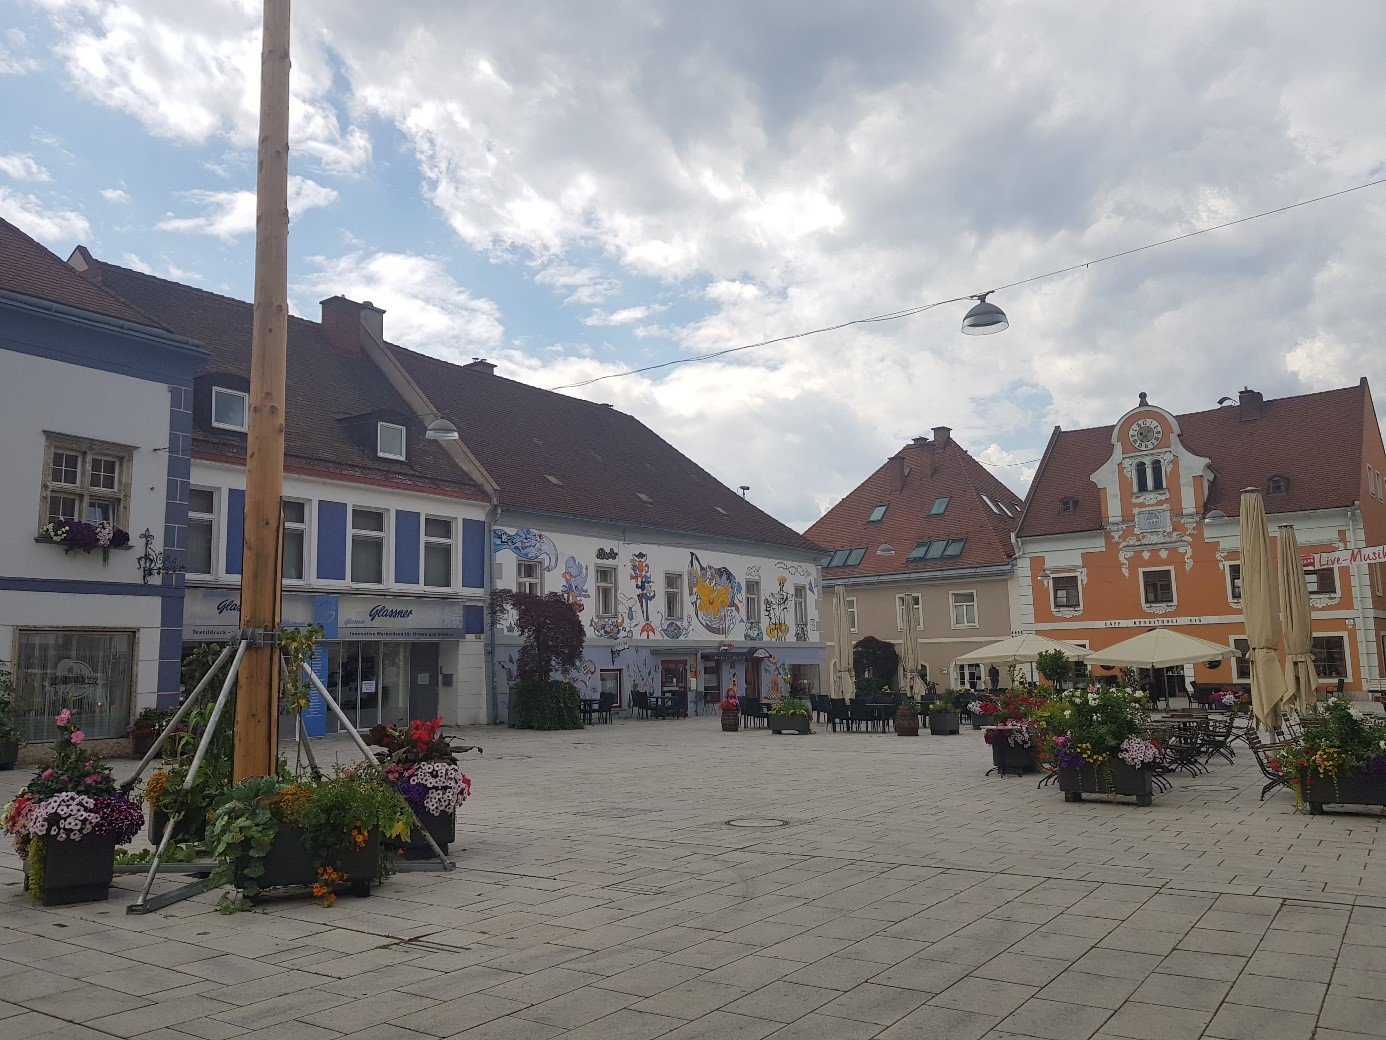 The Main Square in Kapfenberg